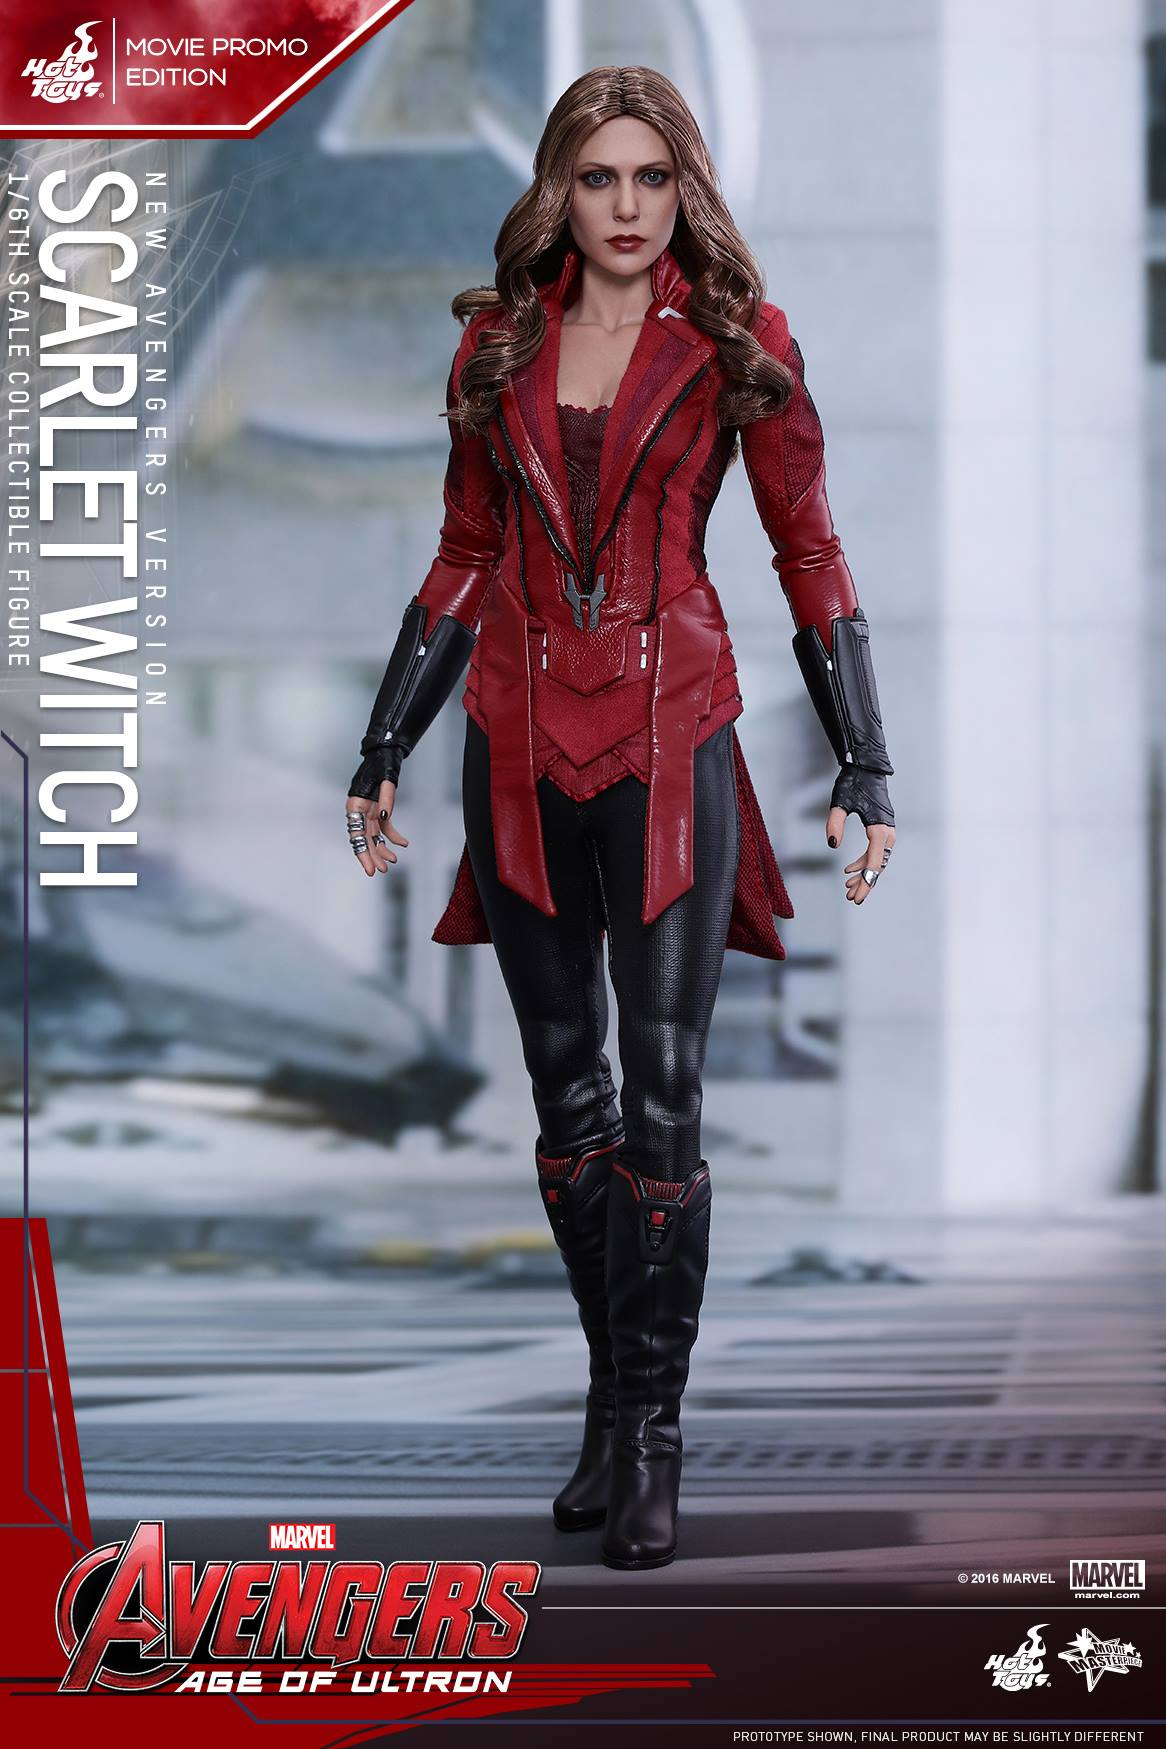 Hot-Toys-AoU-New-Avengers-Scarlet-Witch-003.jpg